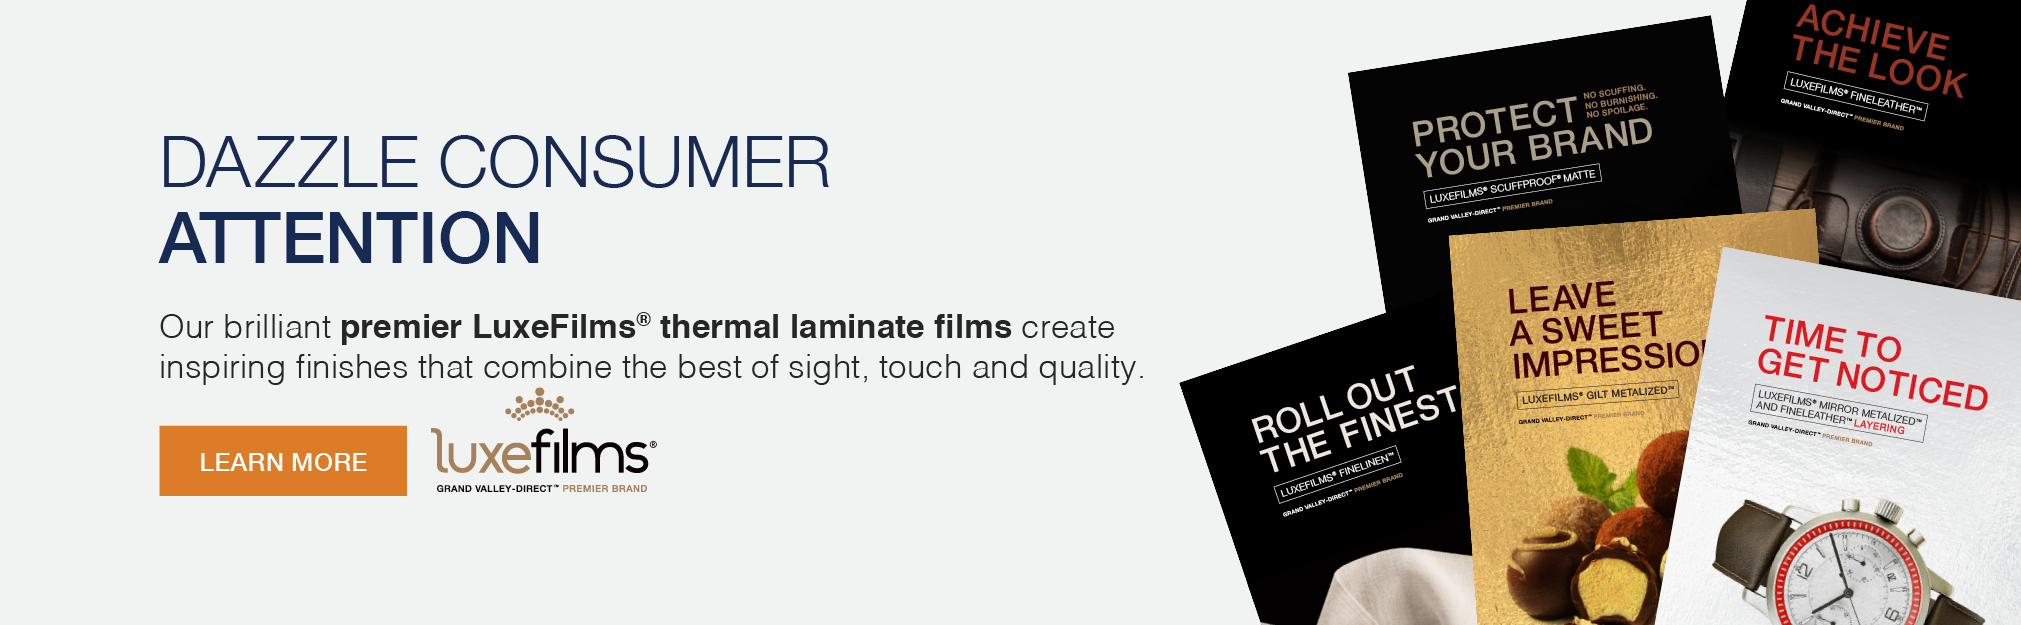 LuxeFilms, Specialty Thermal Laminate Film